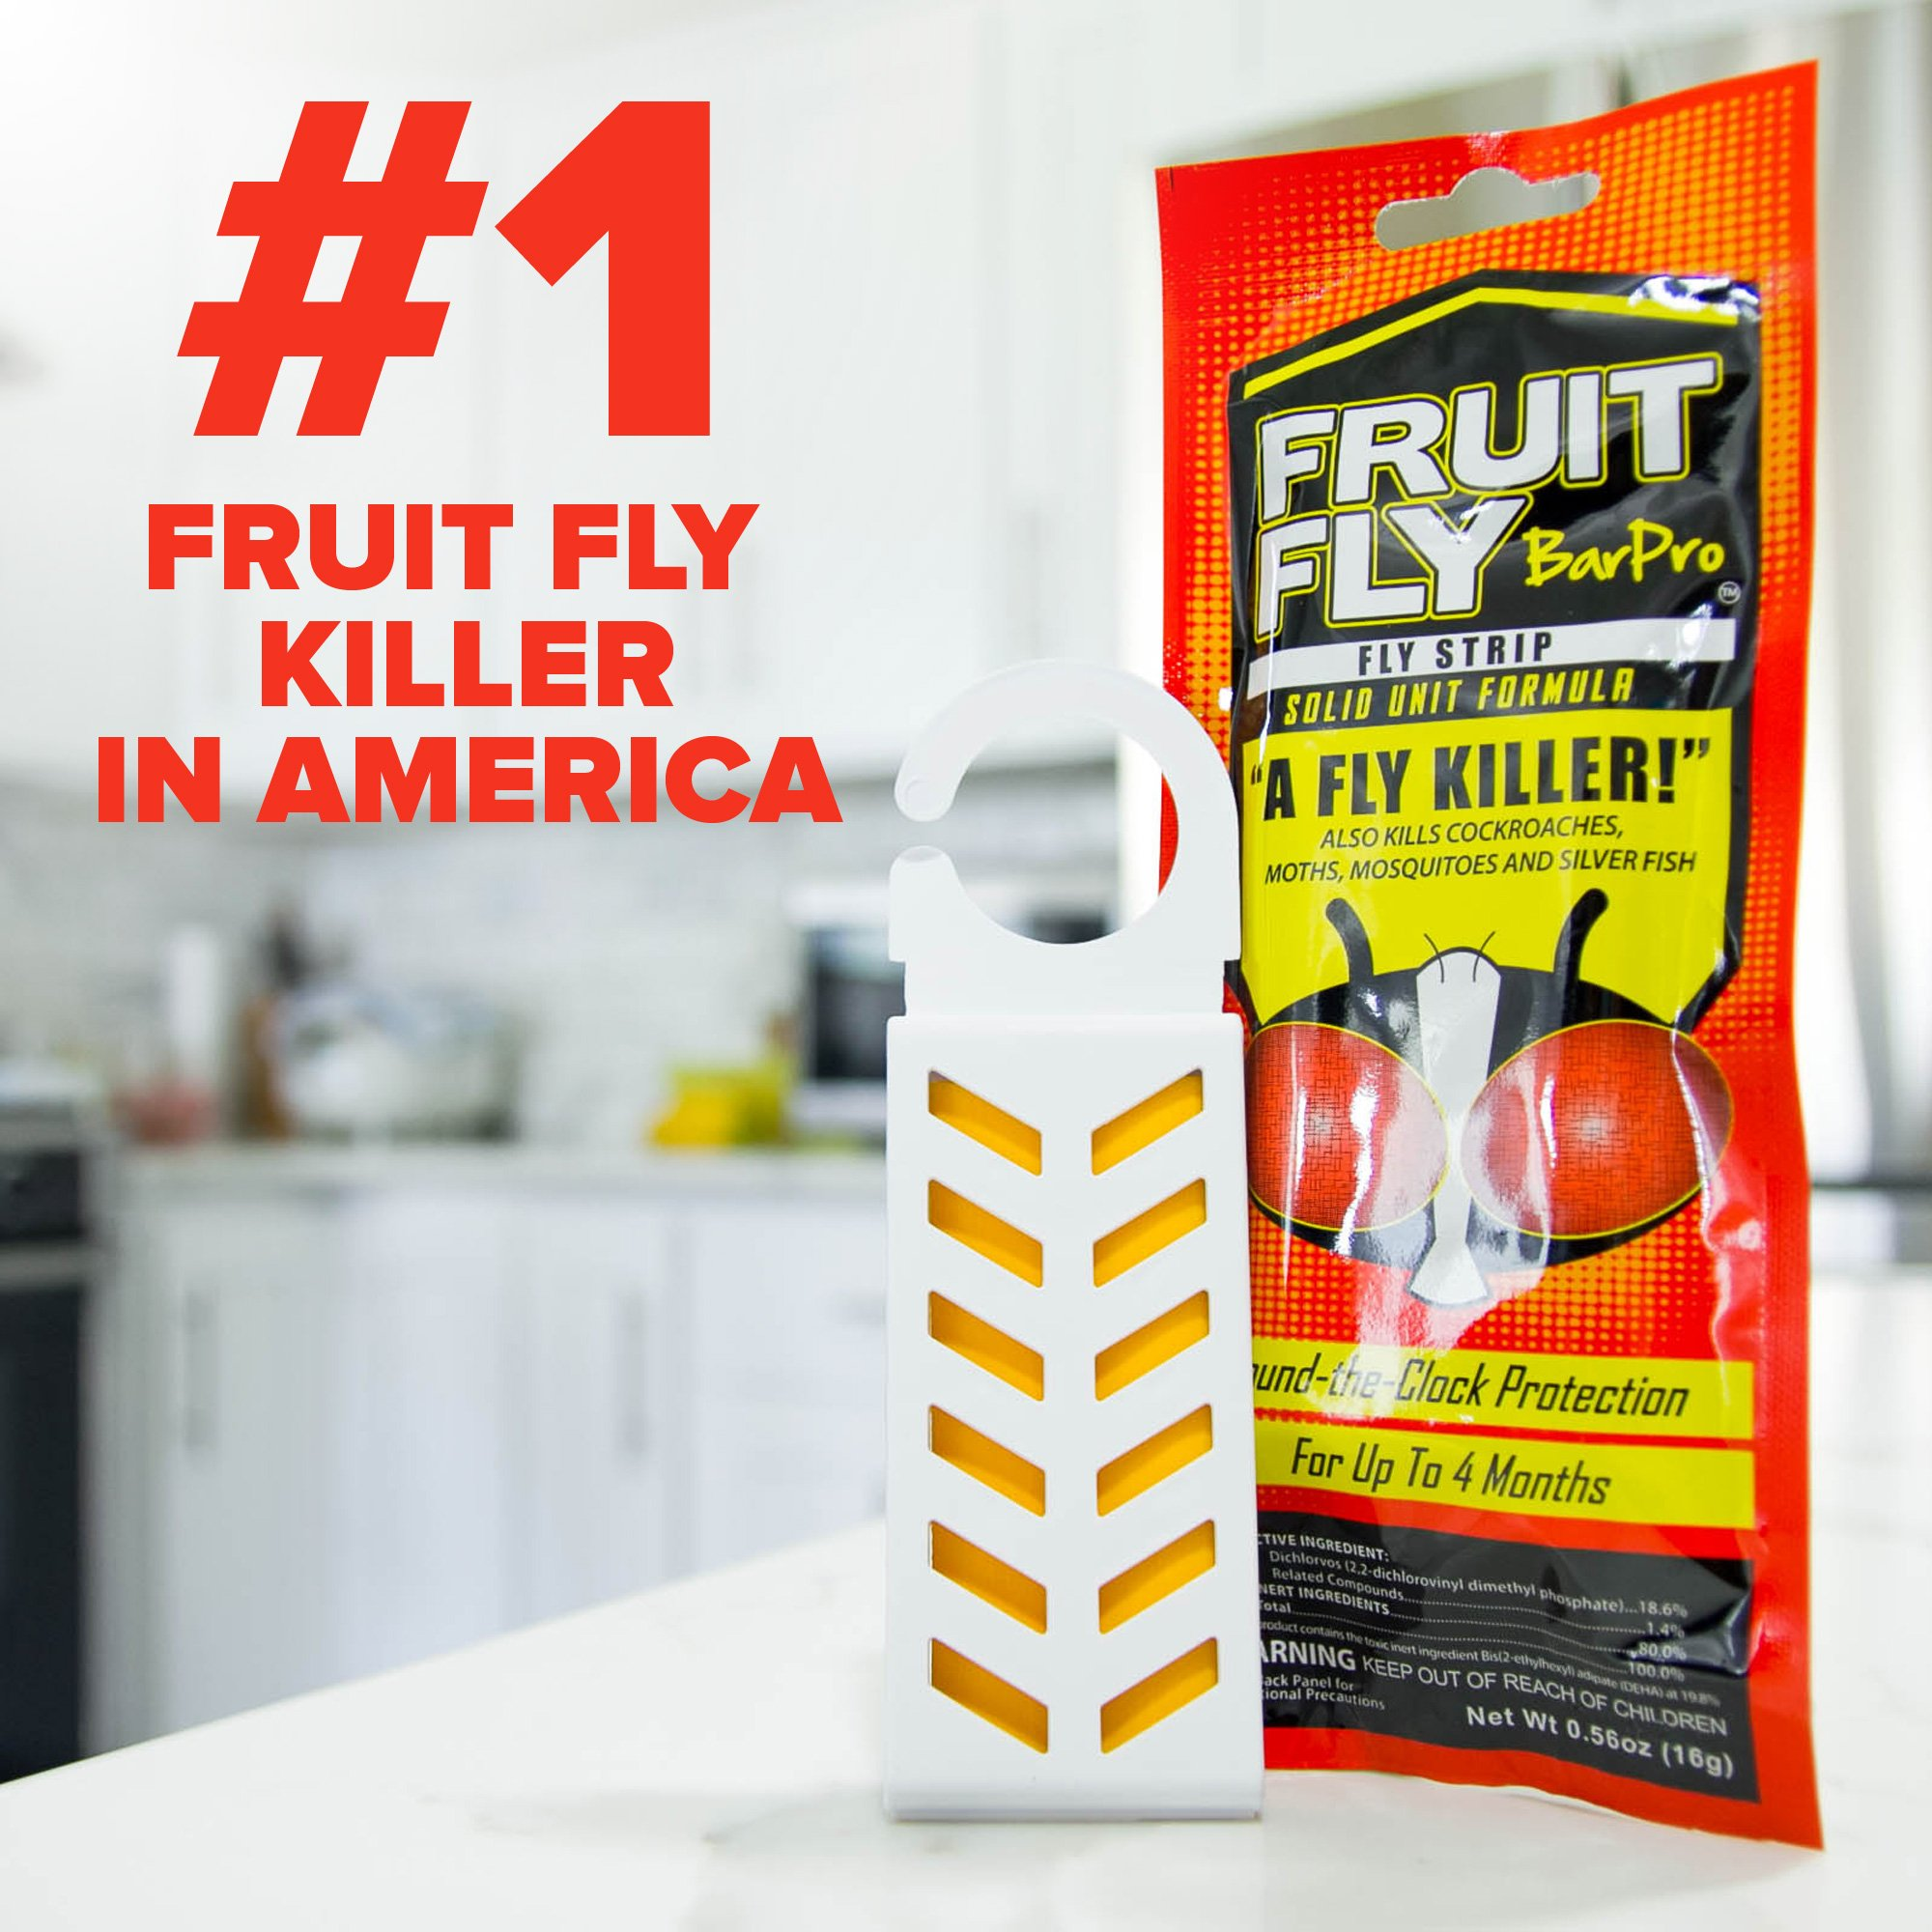 Fruit Fly BarPro Fly Strip – 4 Month Protection Against Flies, Cockroaches, Mosquitos & Other Pests – Portable for Indoor & Outdoor Use (5 Strips, Food Service Pack) by Fruit Fly BarPro (Image #2)